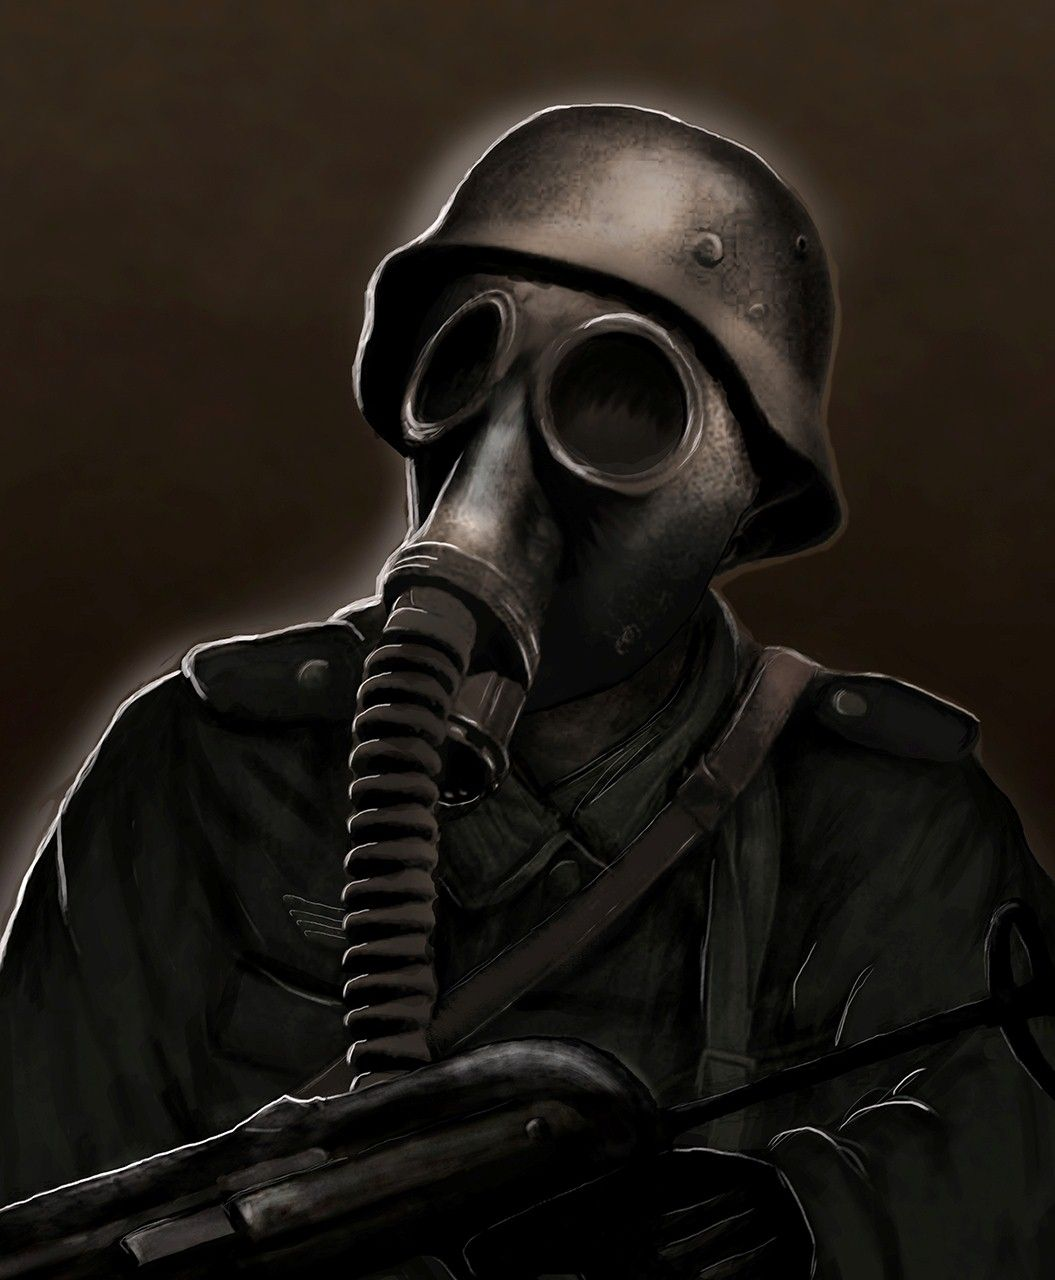 ww2 gas mask drawing - Google Search | Masques | Pinterest ...